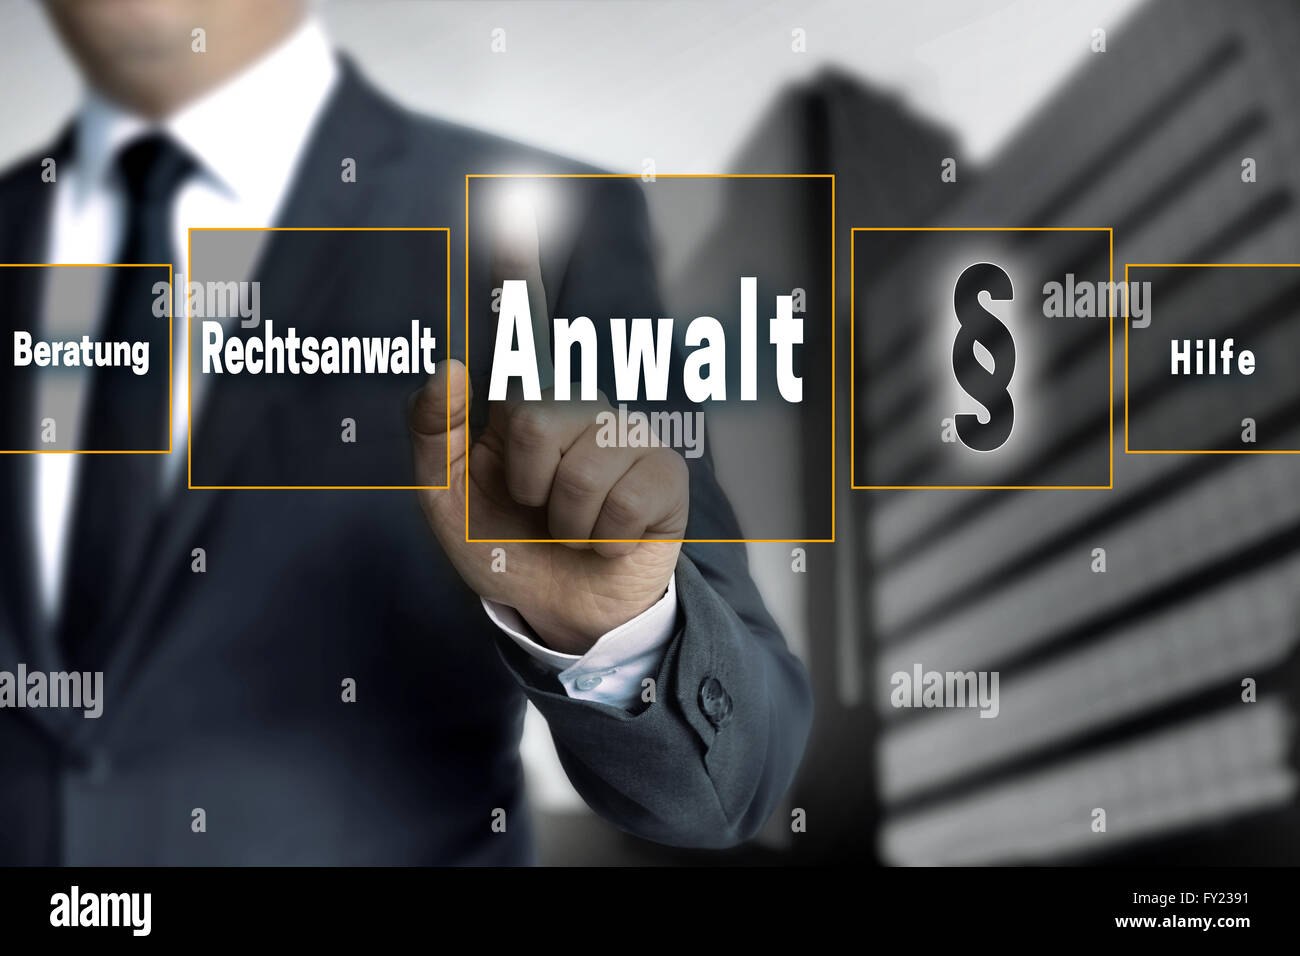 anwalt (in german lawyer, attorney, help, advice) touchscreen is operated by businessman. - Stock Image